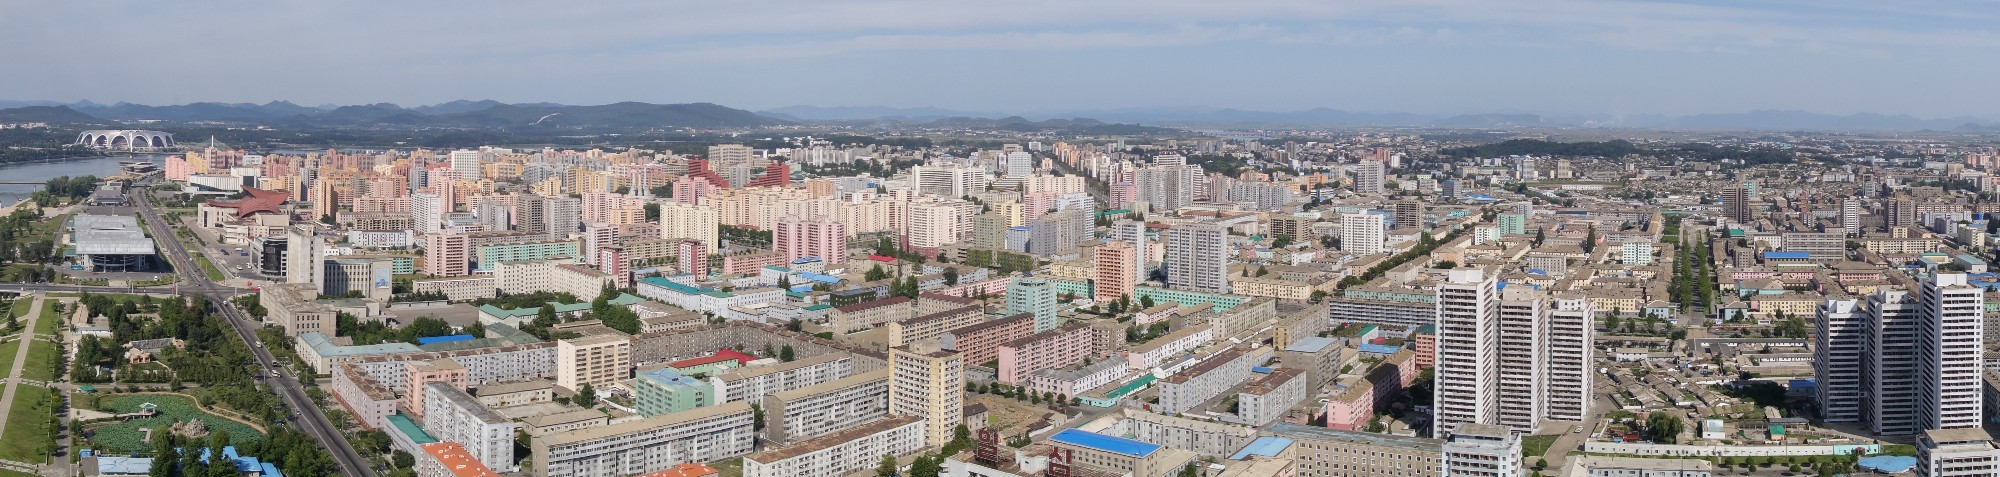 Pyongyang from above